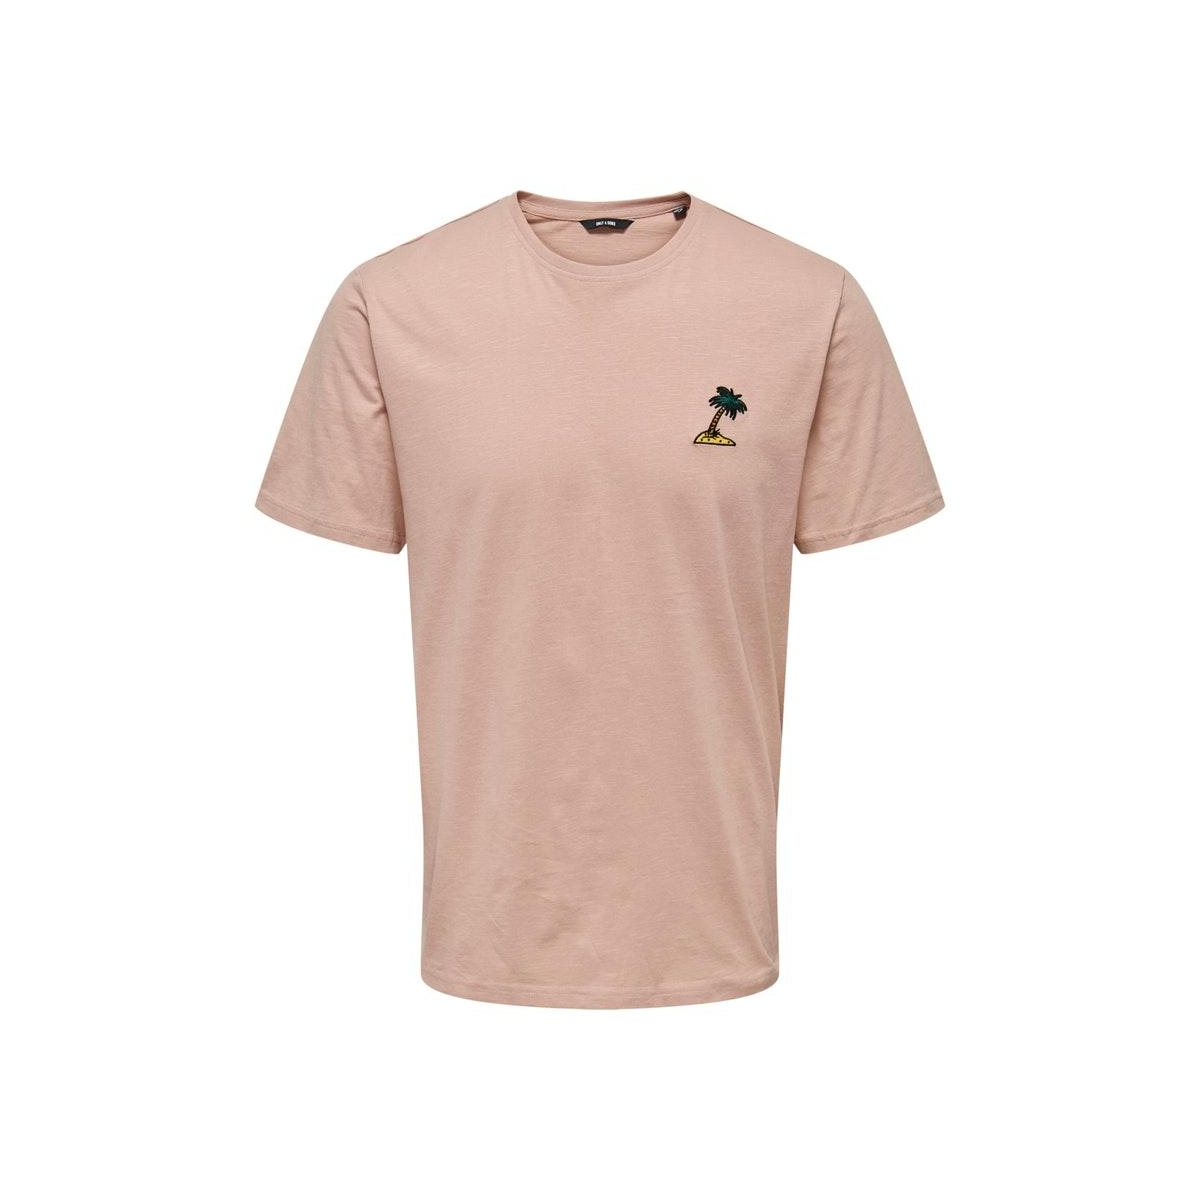 onsimas reg ss tee noos 22016351 only & sons t-shirt misty rose